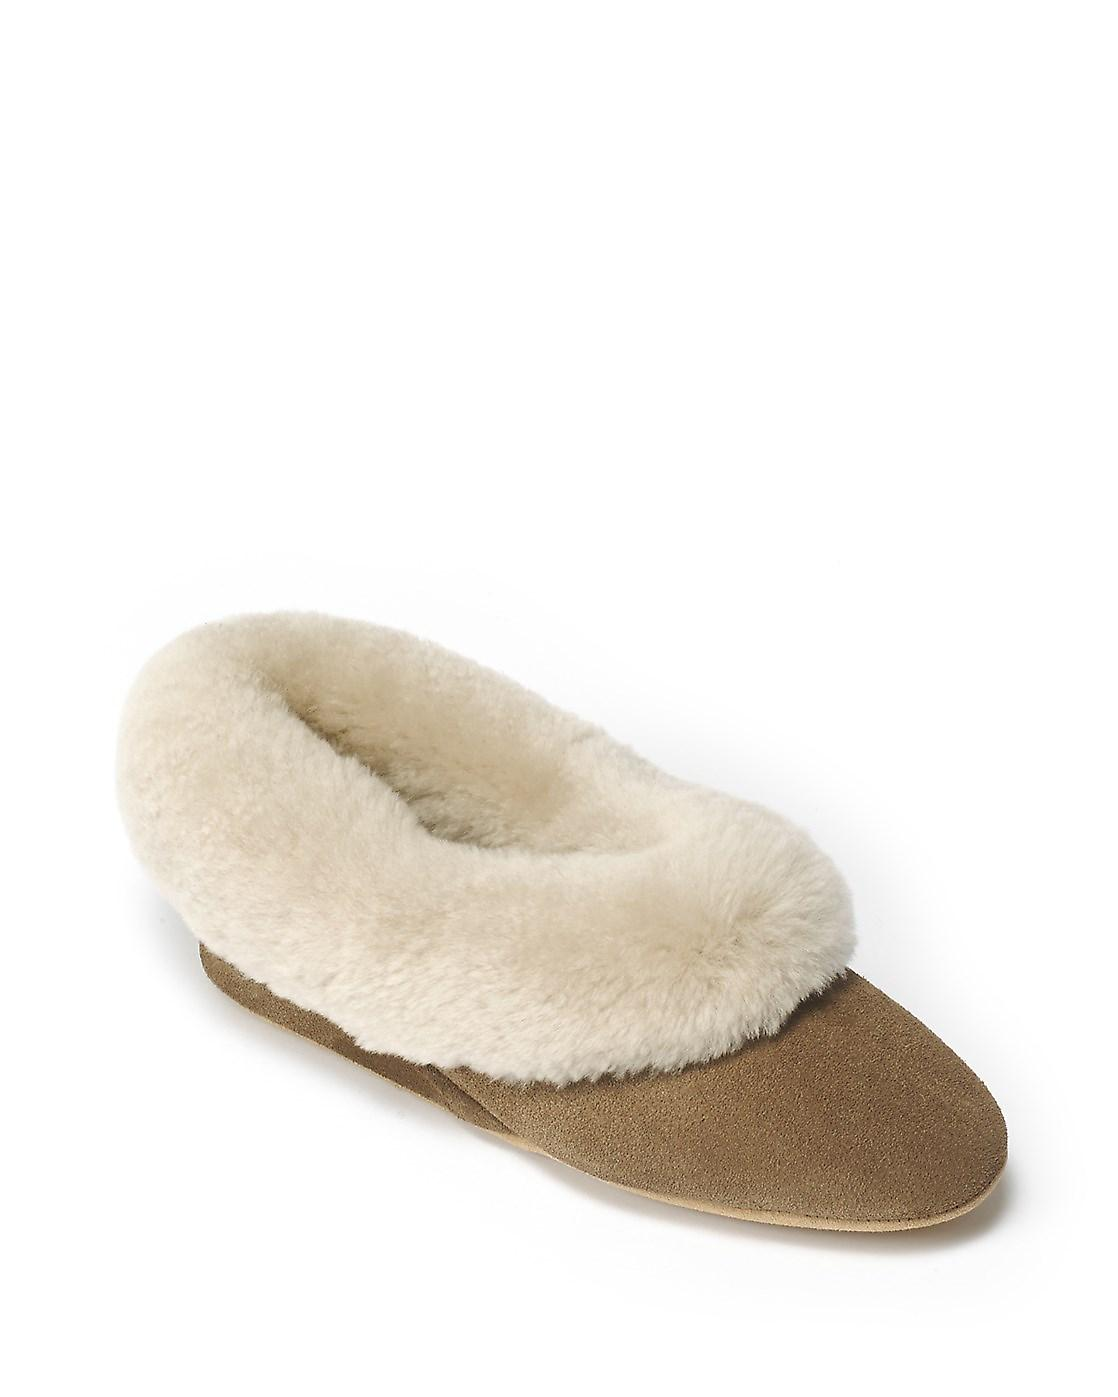 Ladies Seaforth Schapenvacht Slippers - Mole